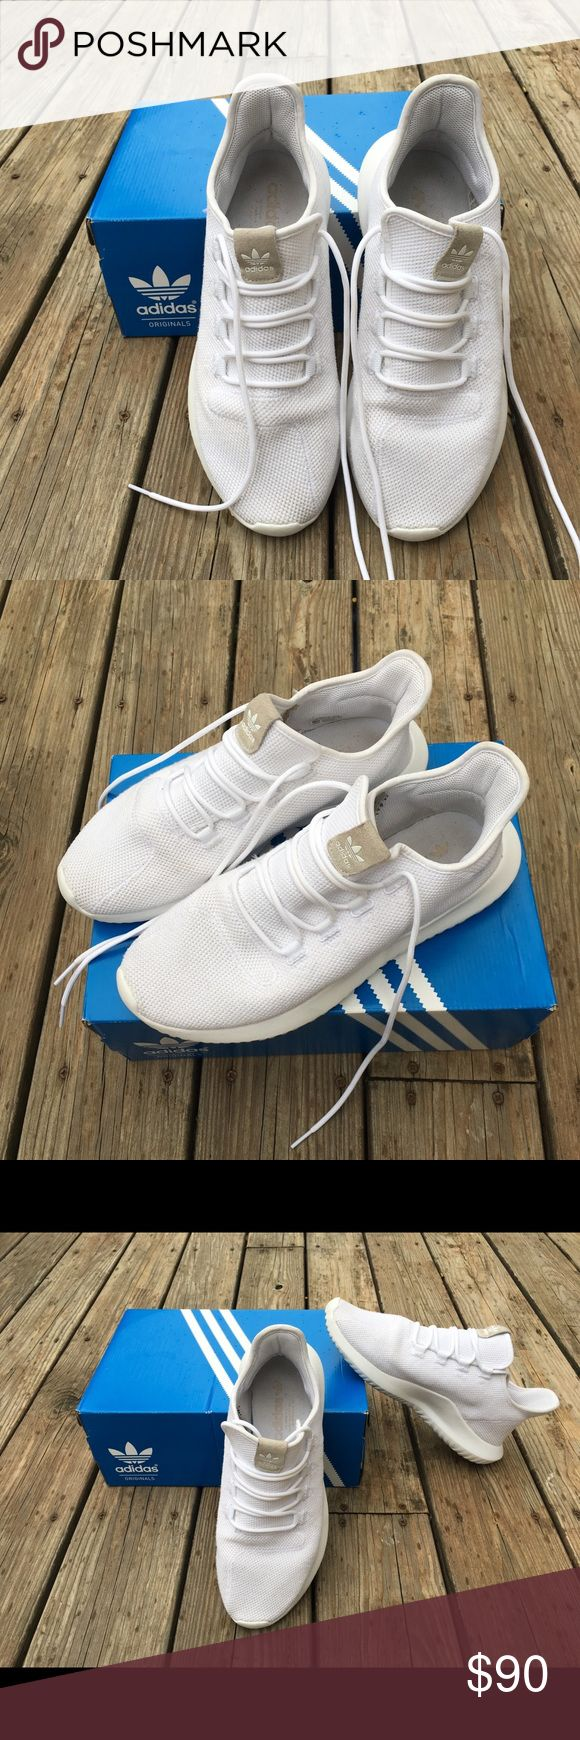 Adidas Tubulars Only worn a couple of times got another pair just like them. They are originally $100 at champs and other stores adidas Shoes Athletic Shoes